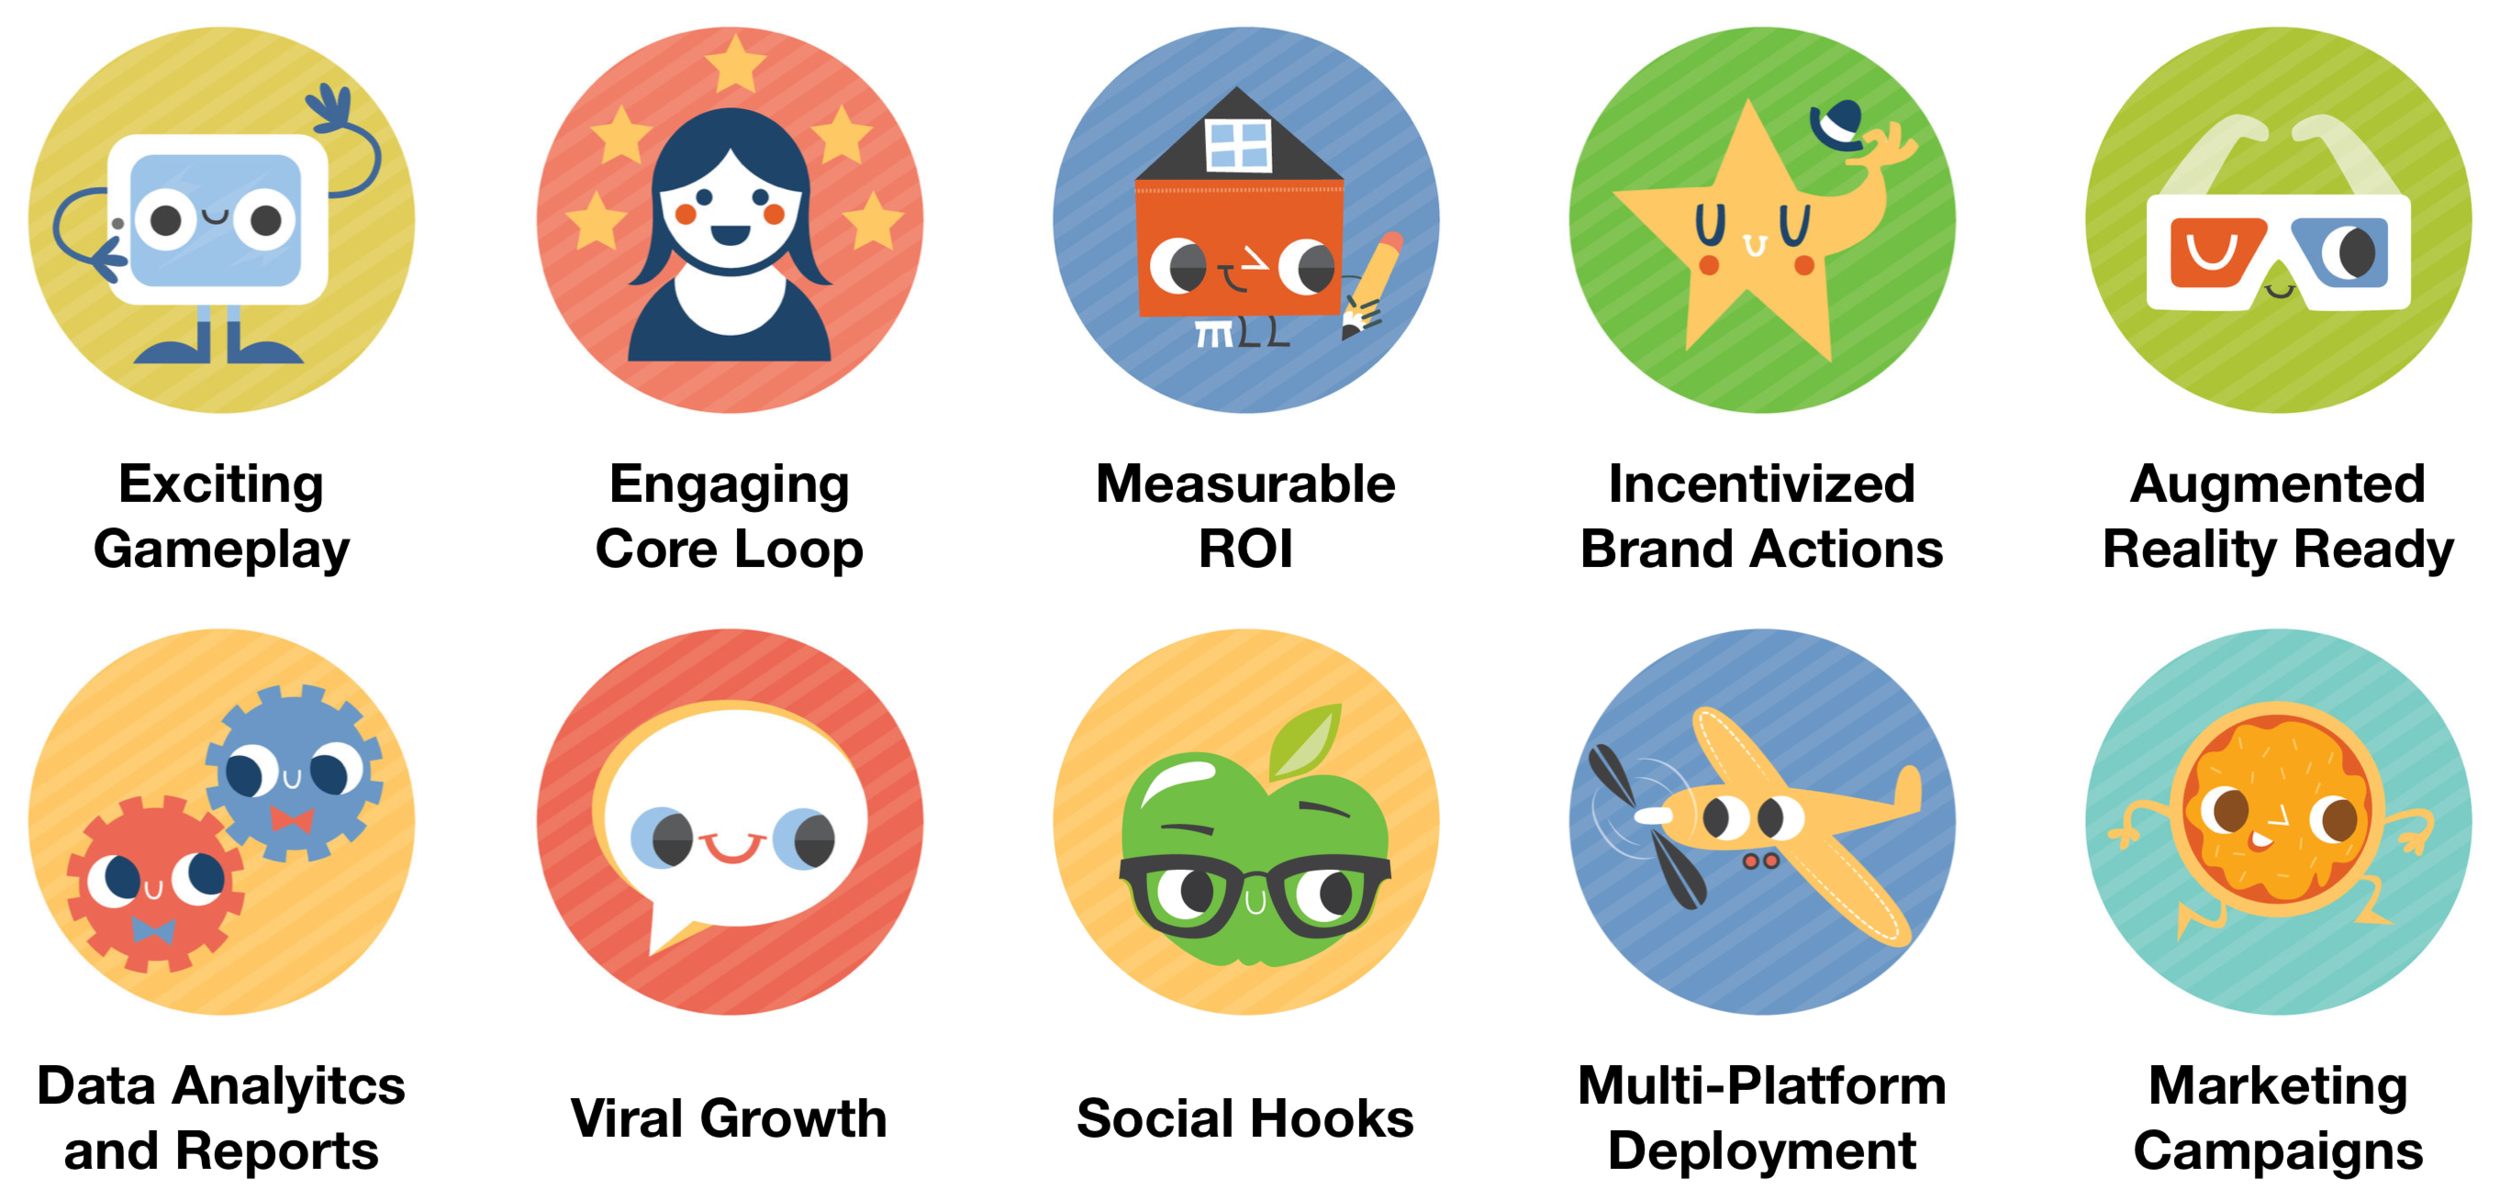 CapabilityBadges.png